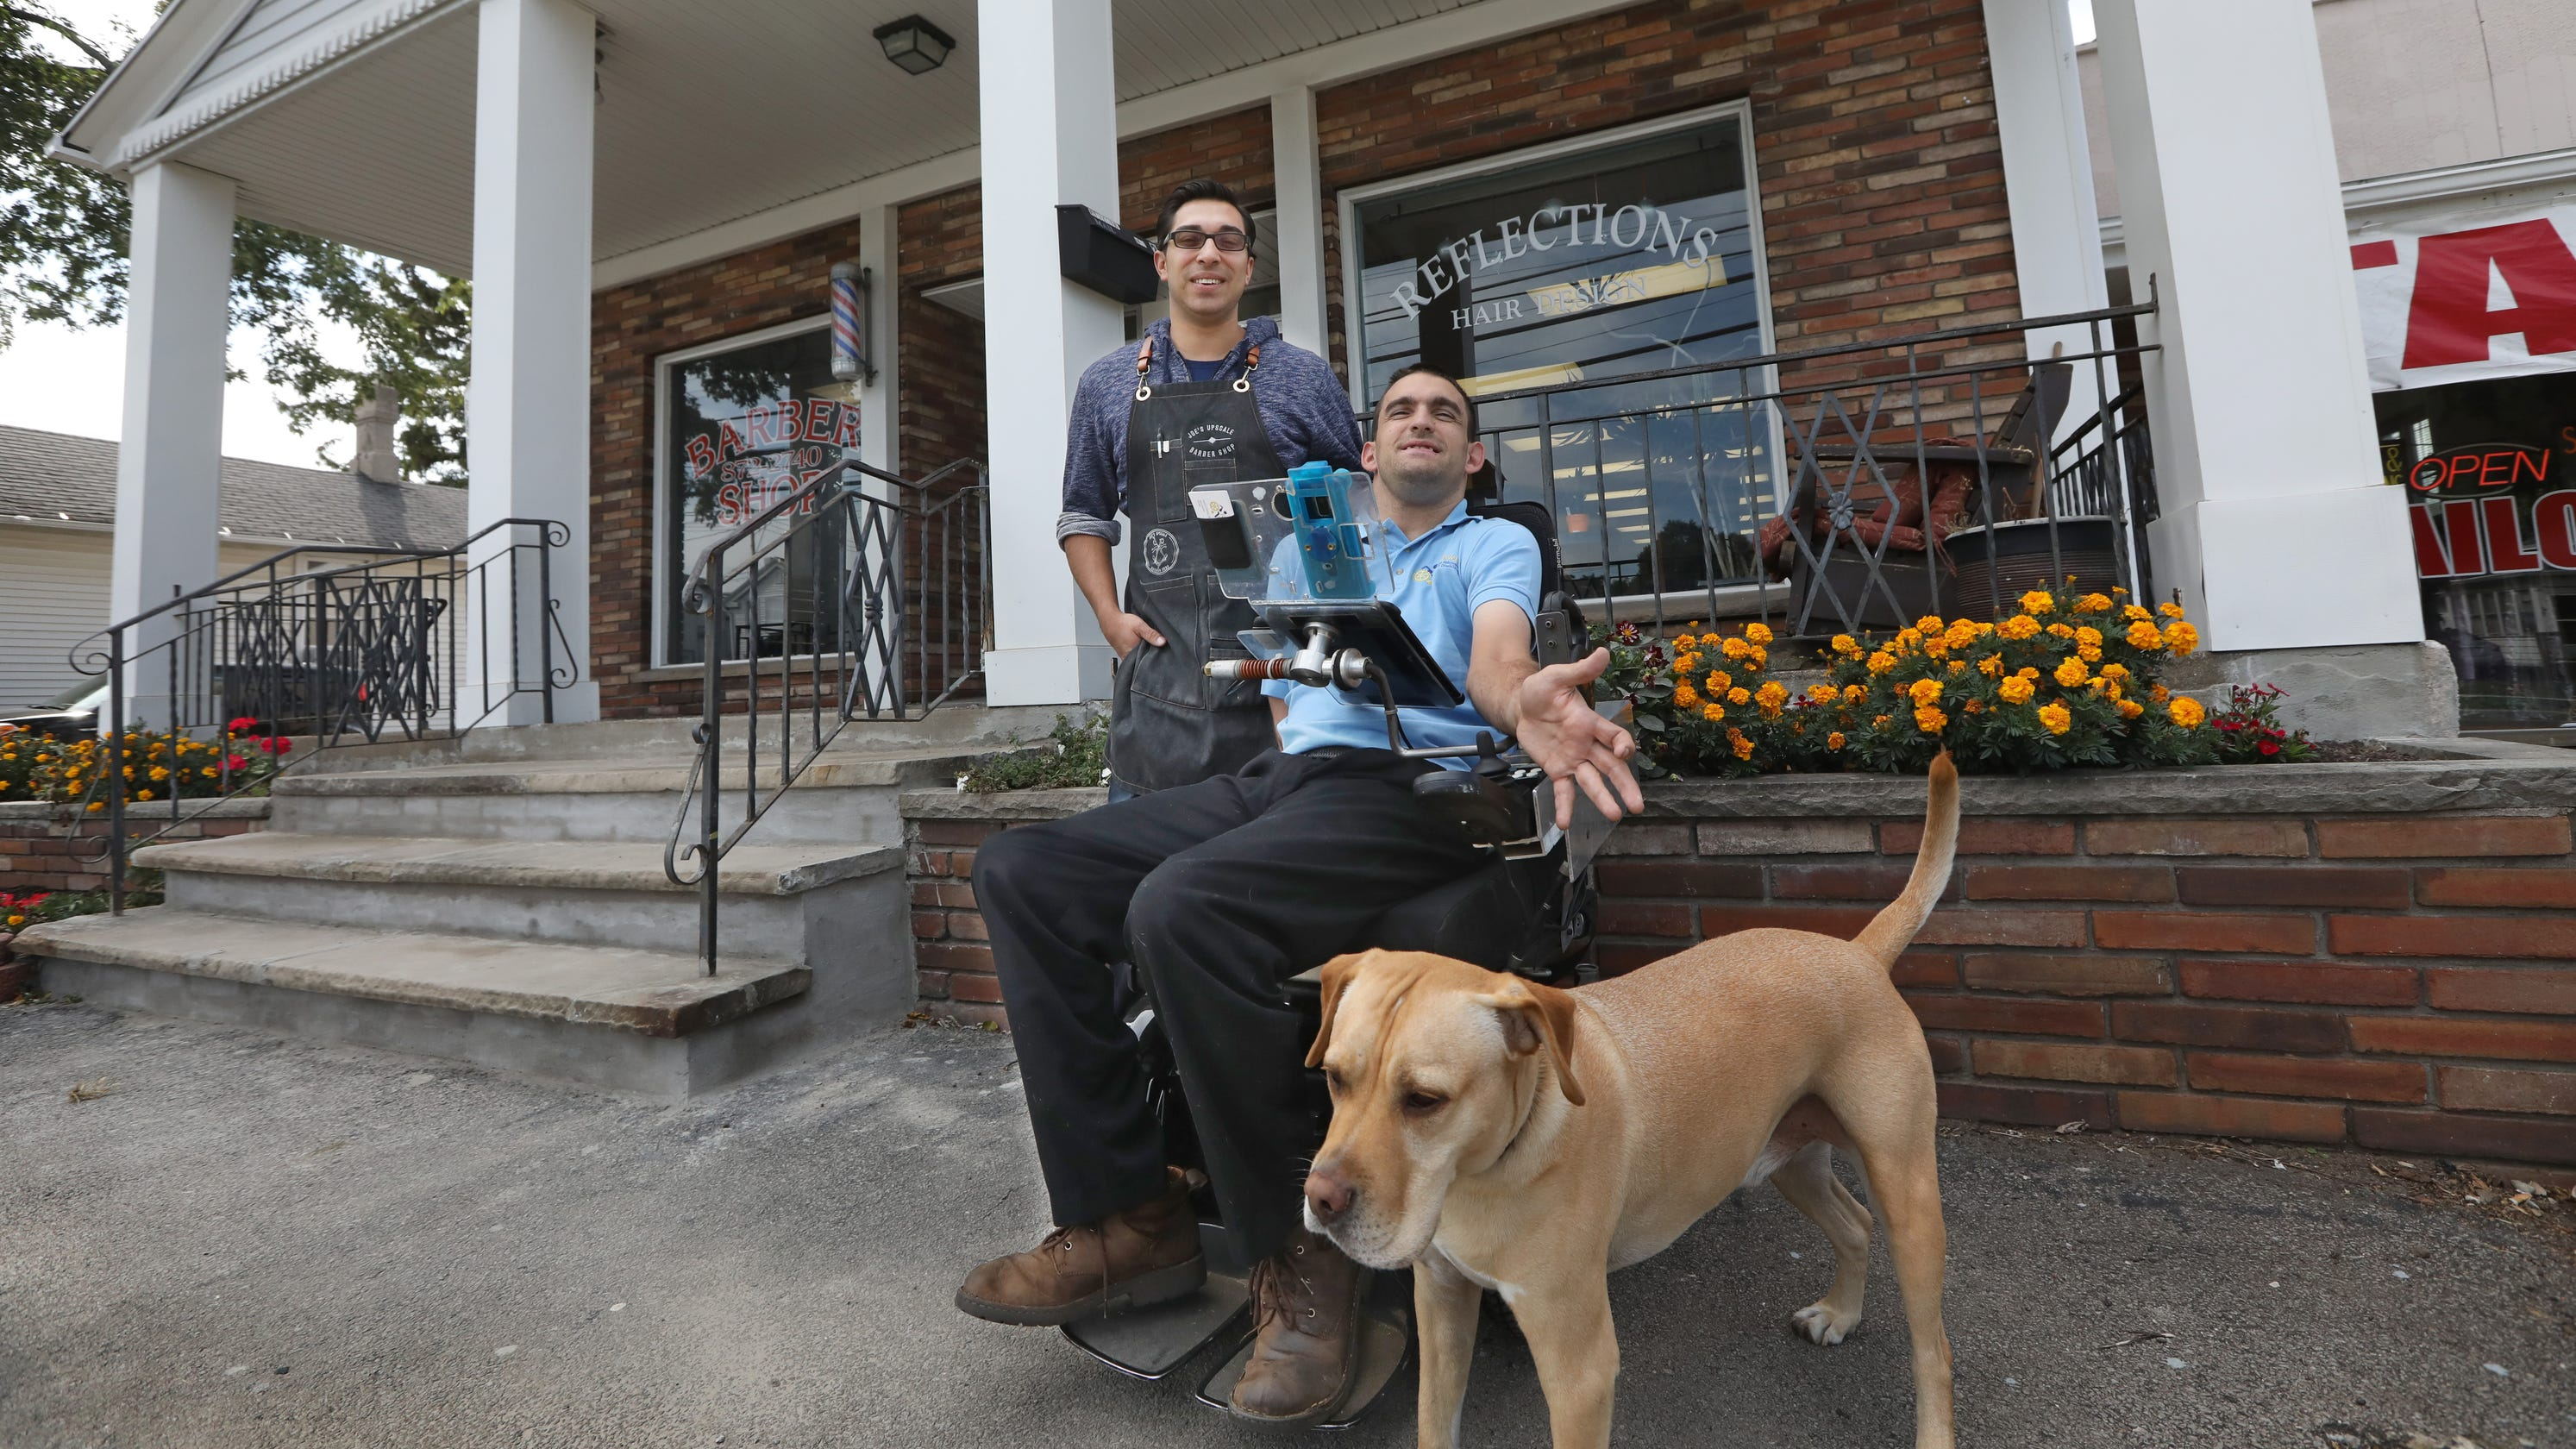 Webster Barber Cuts Hair Of Customer In Wheelchair On Sidewalk